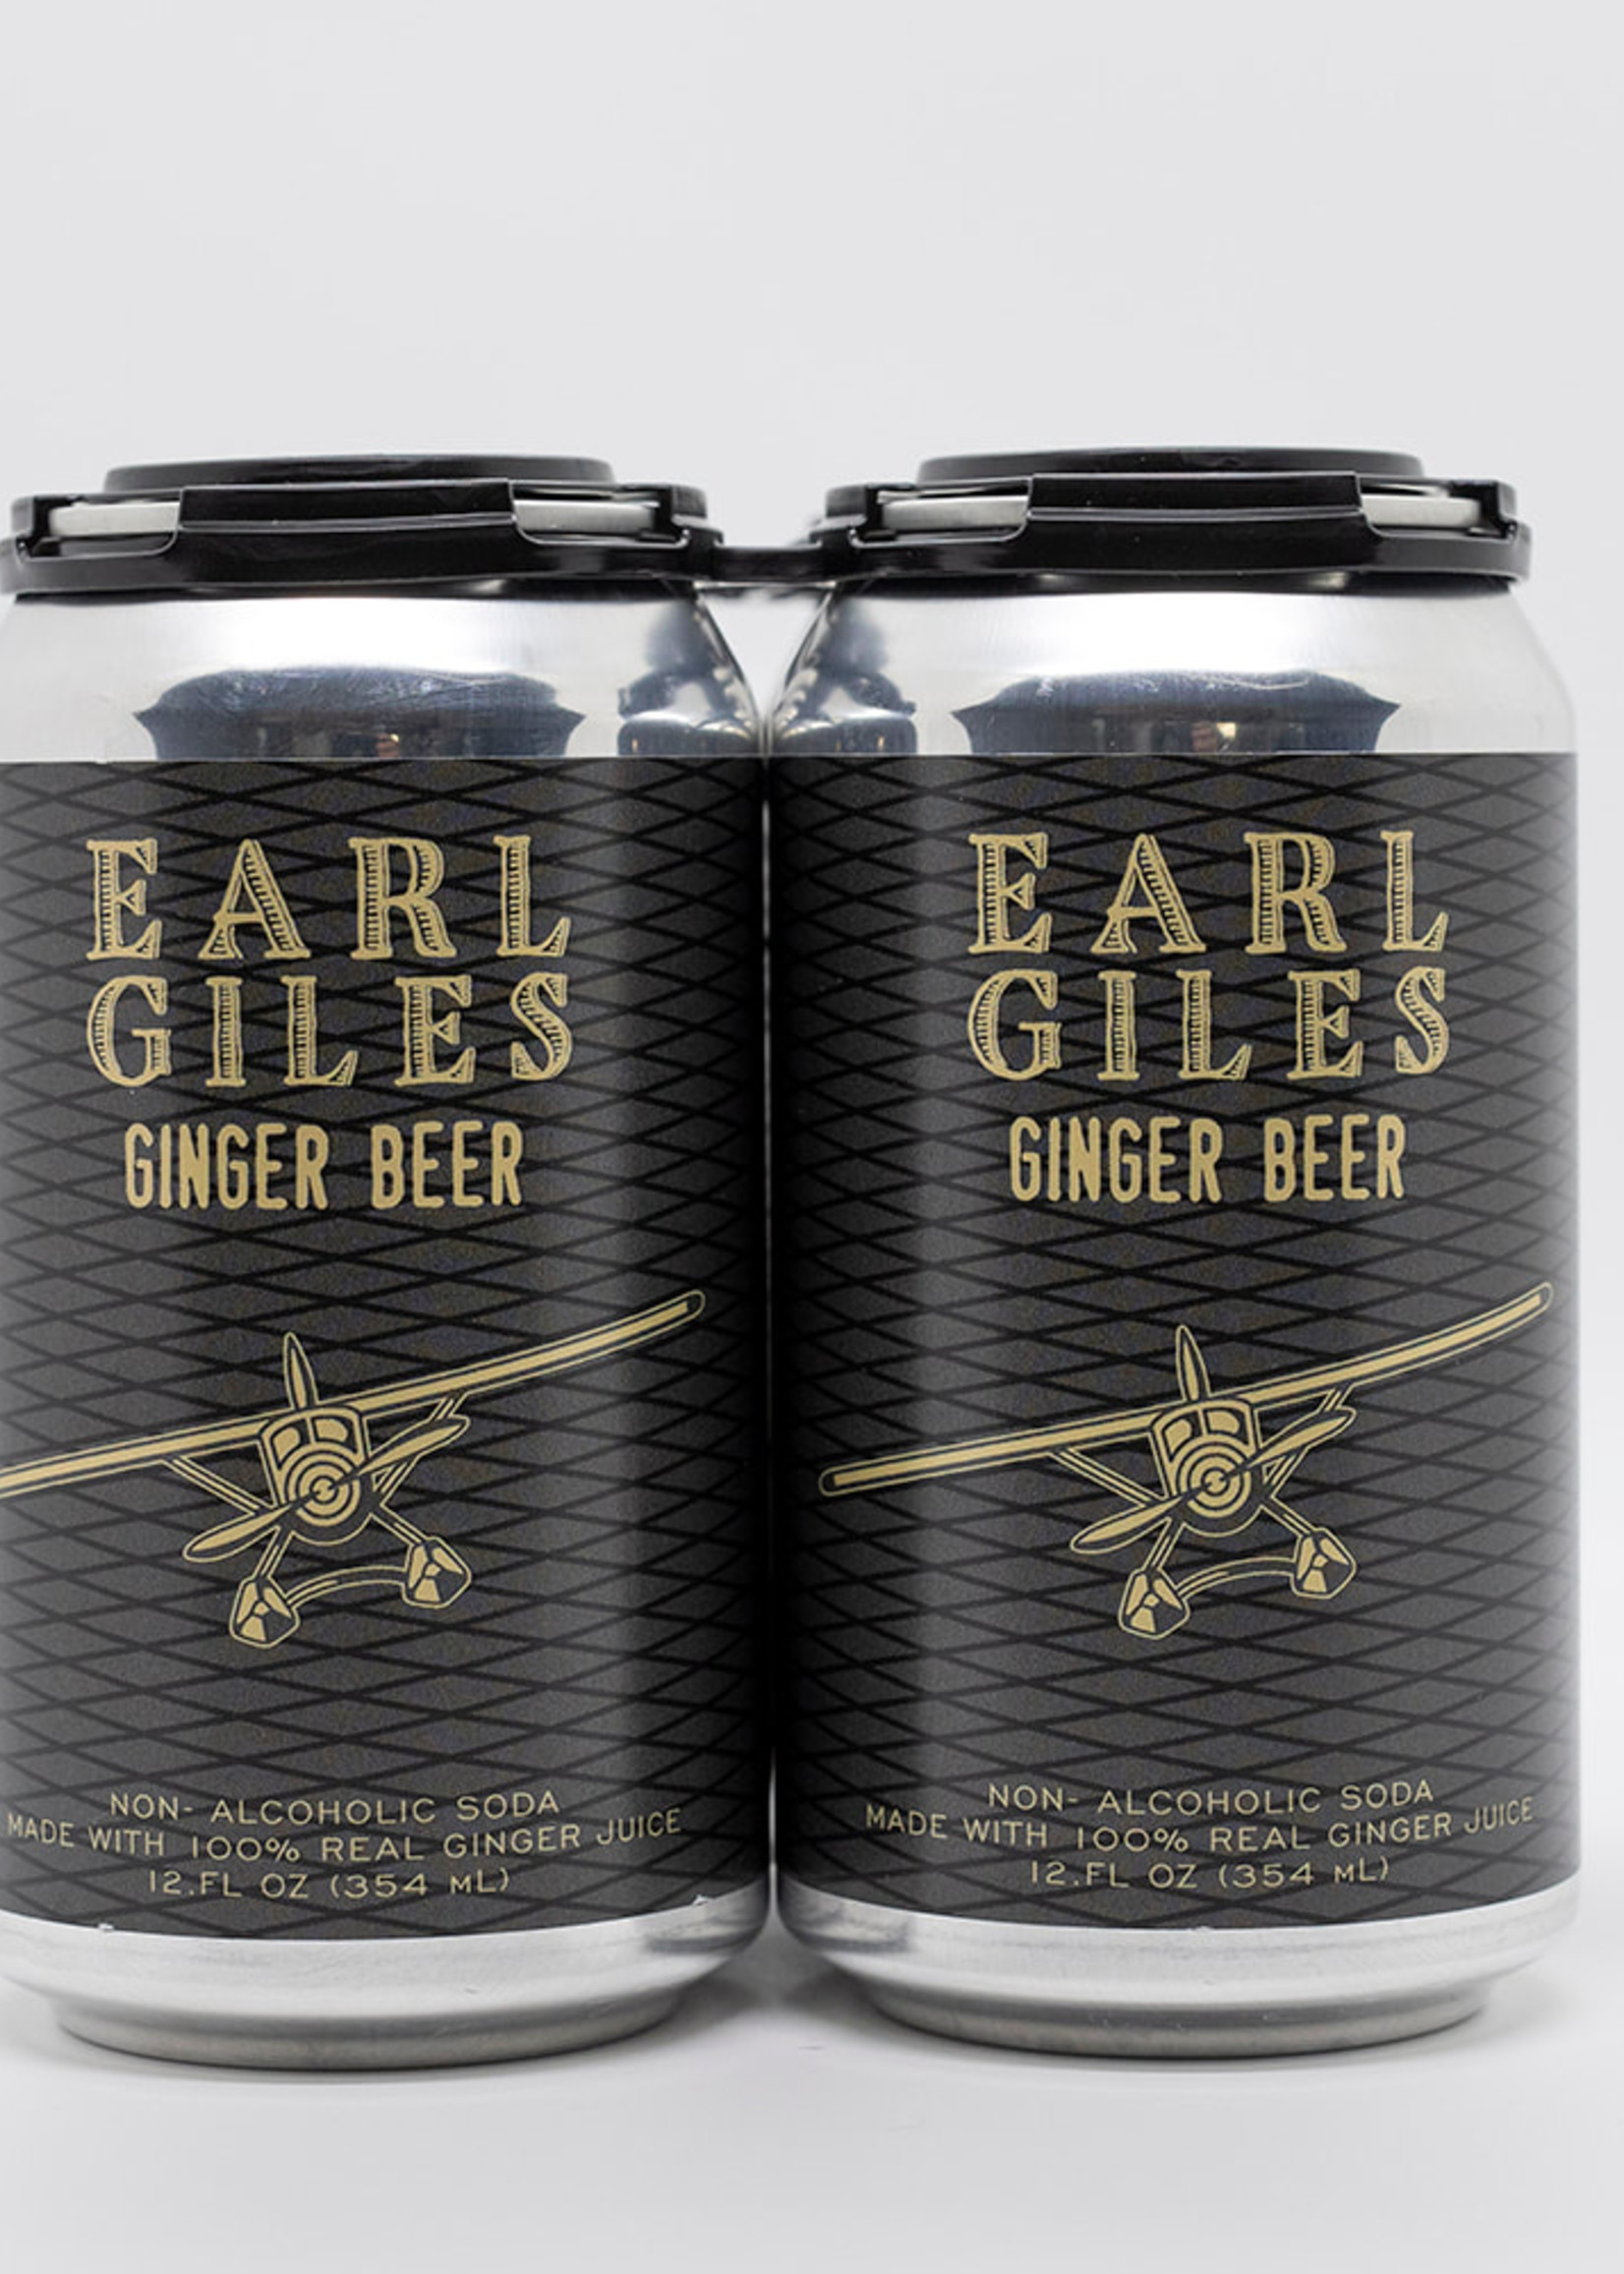 Earl Giles Ginger Beer - 4x12oz Cans